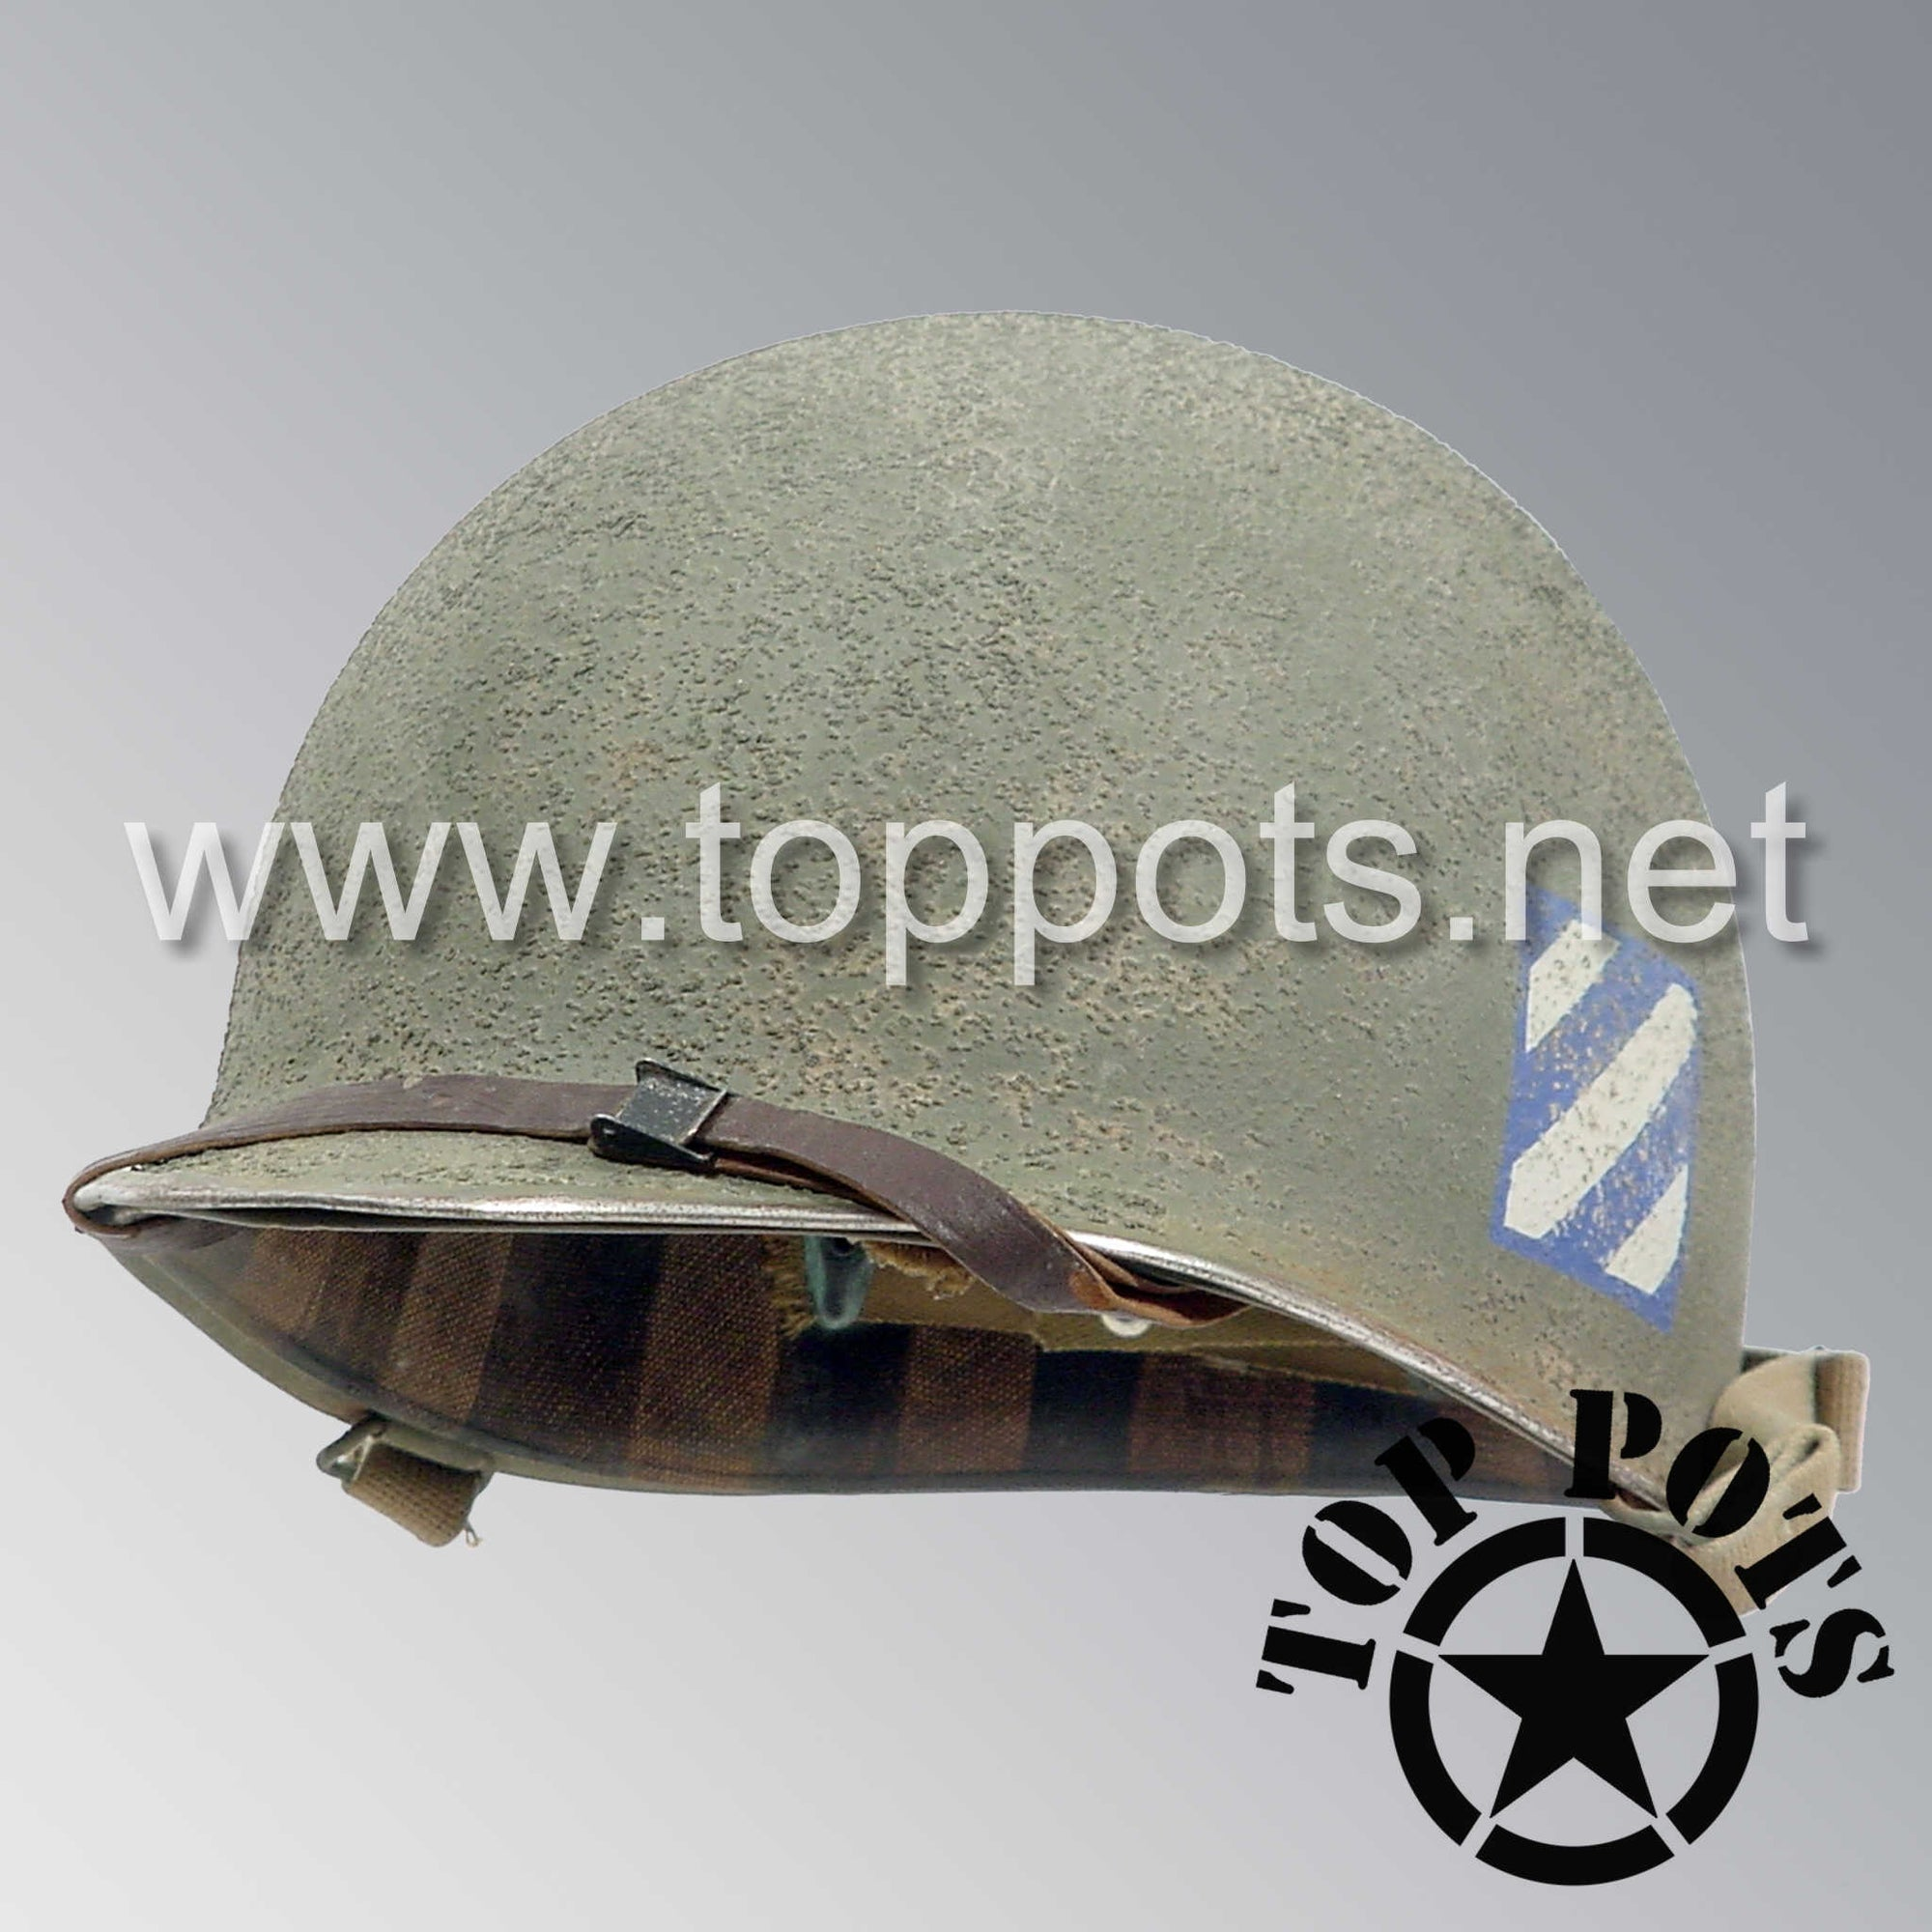 Image 1 of WWII US Army Aged Original M1 Infantry Helmet Swivel Bale Shell and Liner with 3rd Infantry Division Emblem